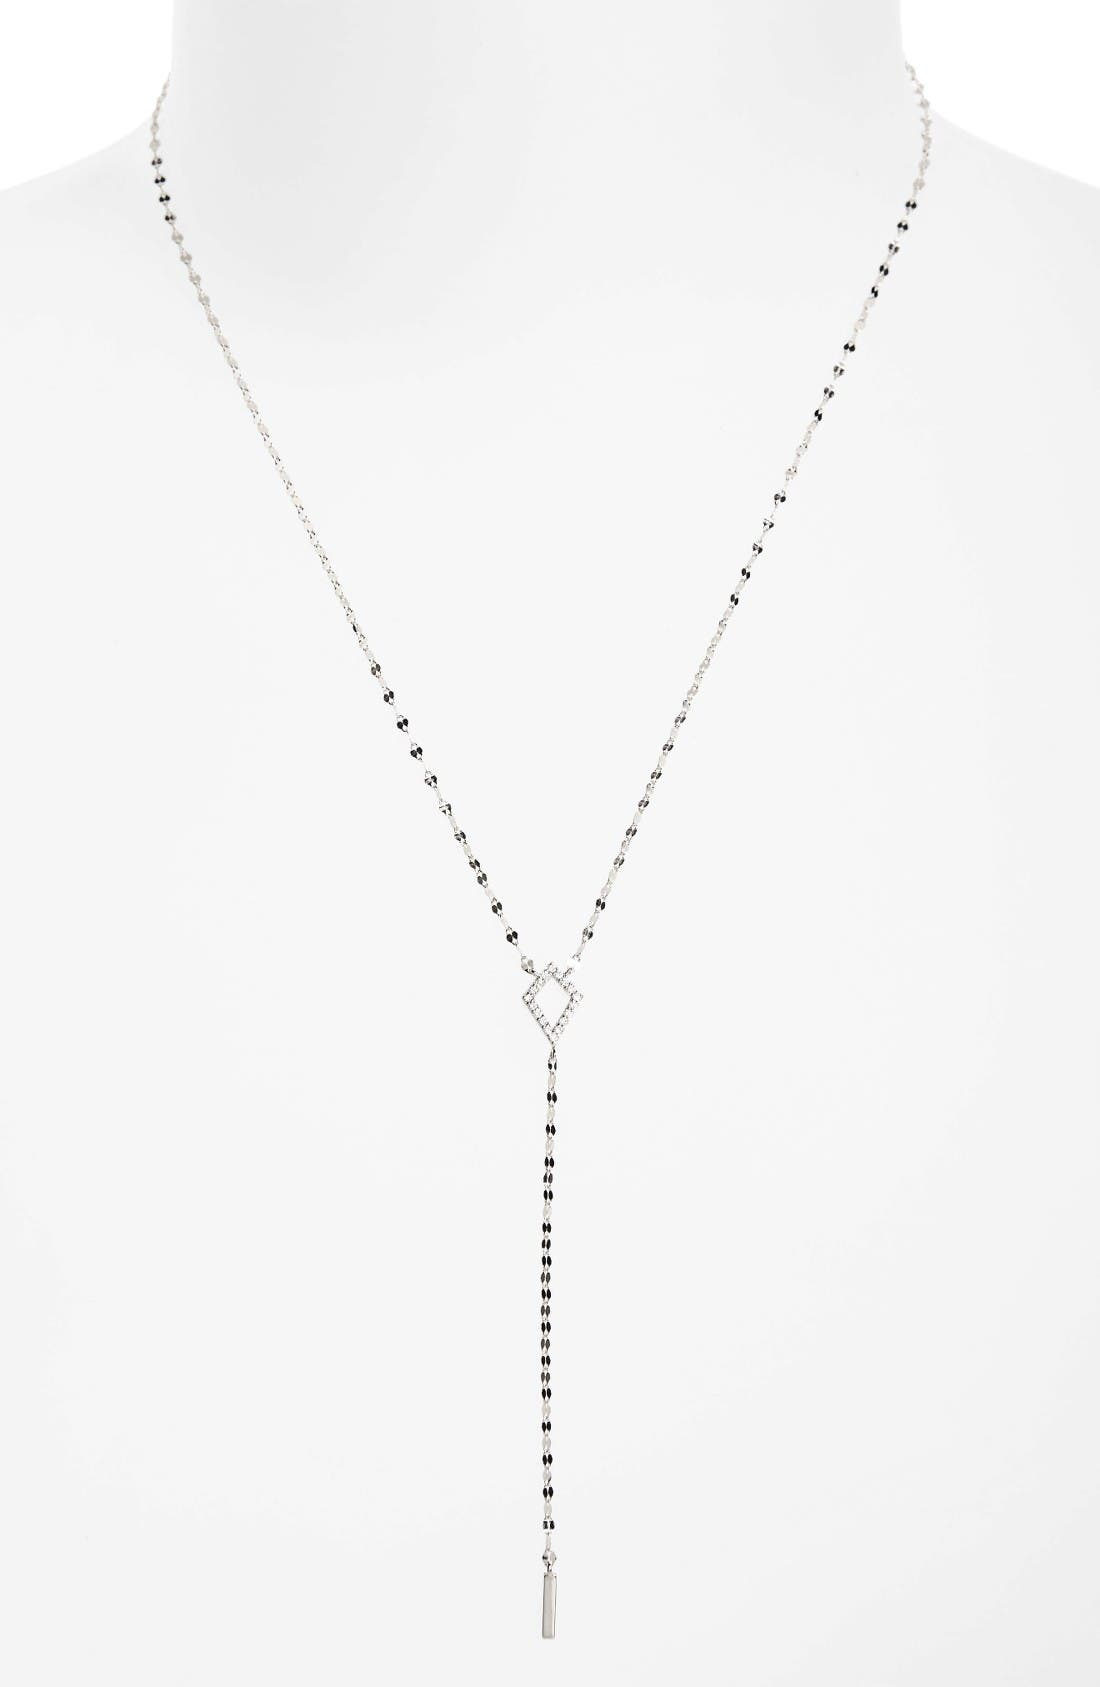 Flawless Diamond Kite Y-Necklace,                             Main thumbnail 1, color,                             White Gold